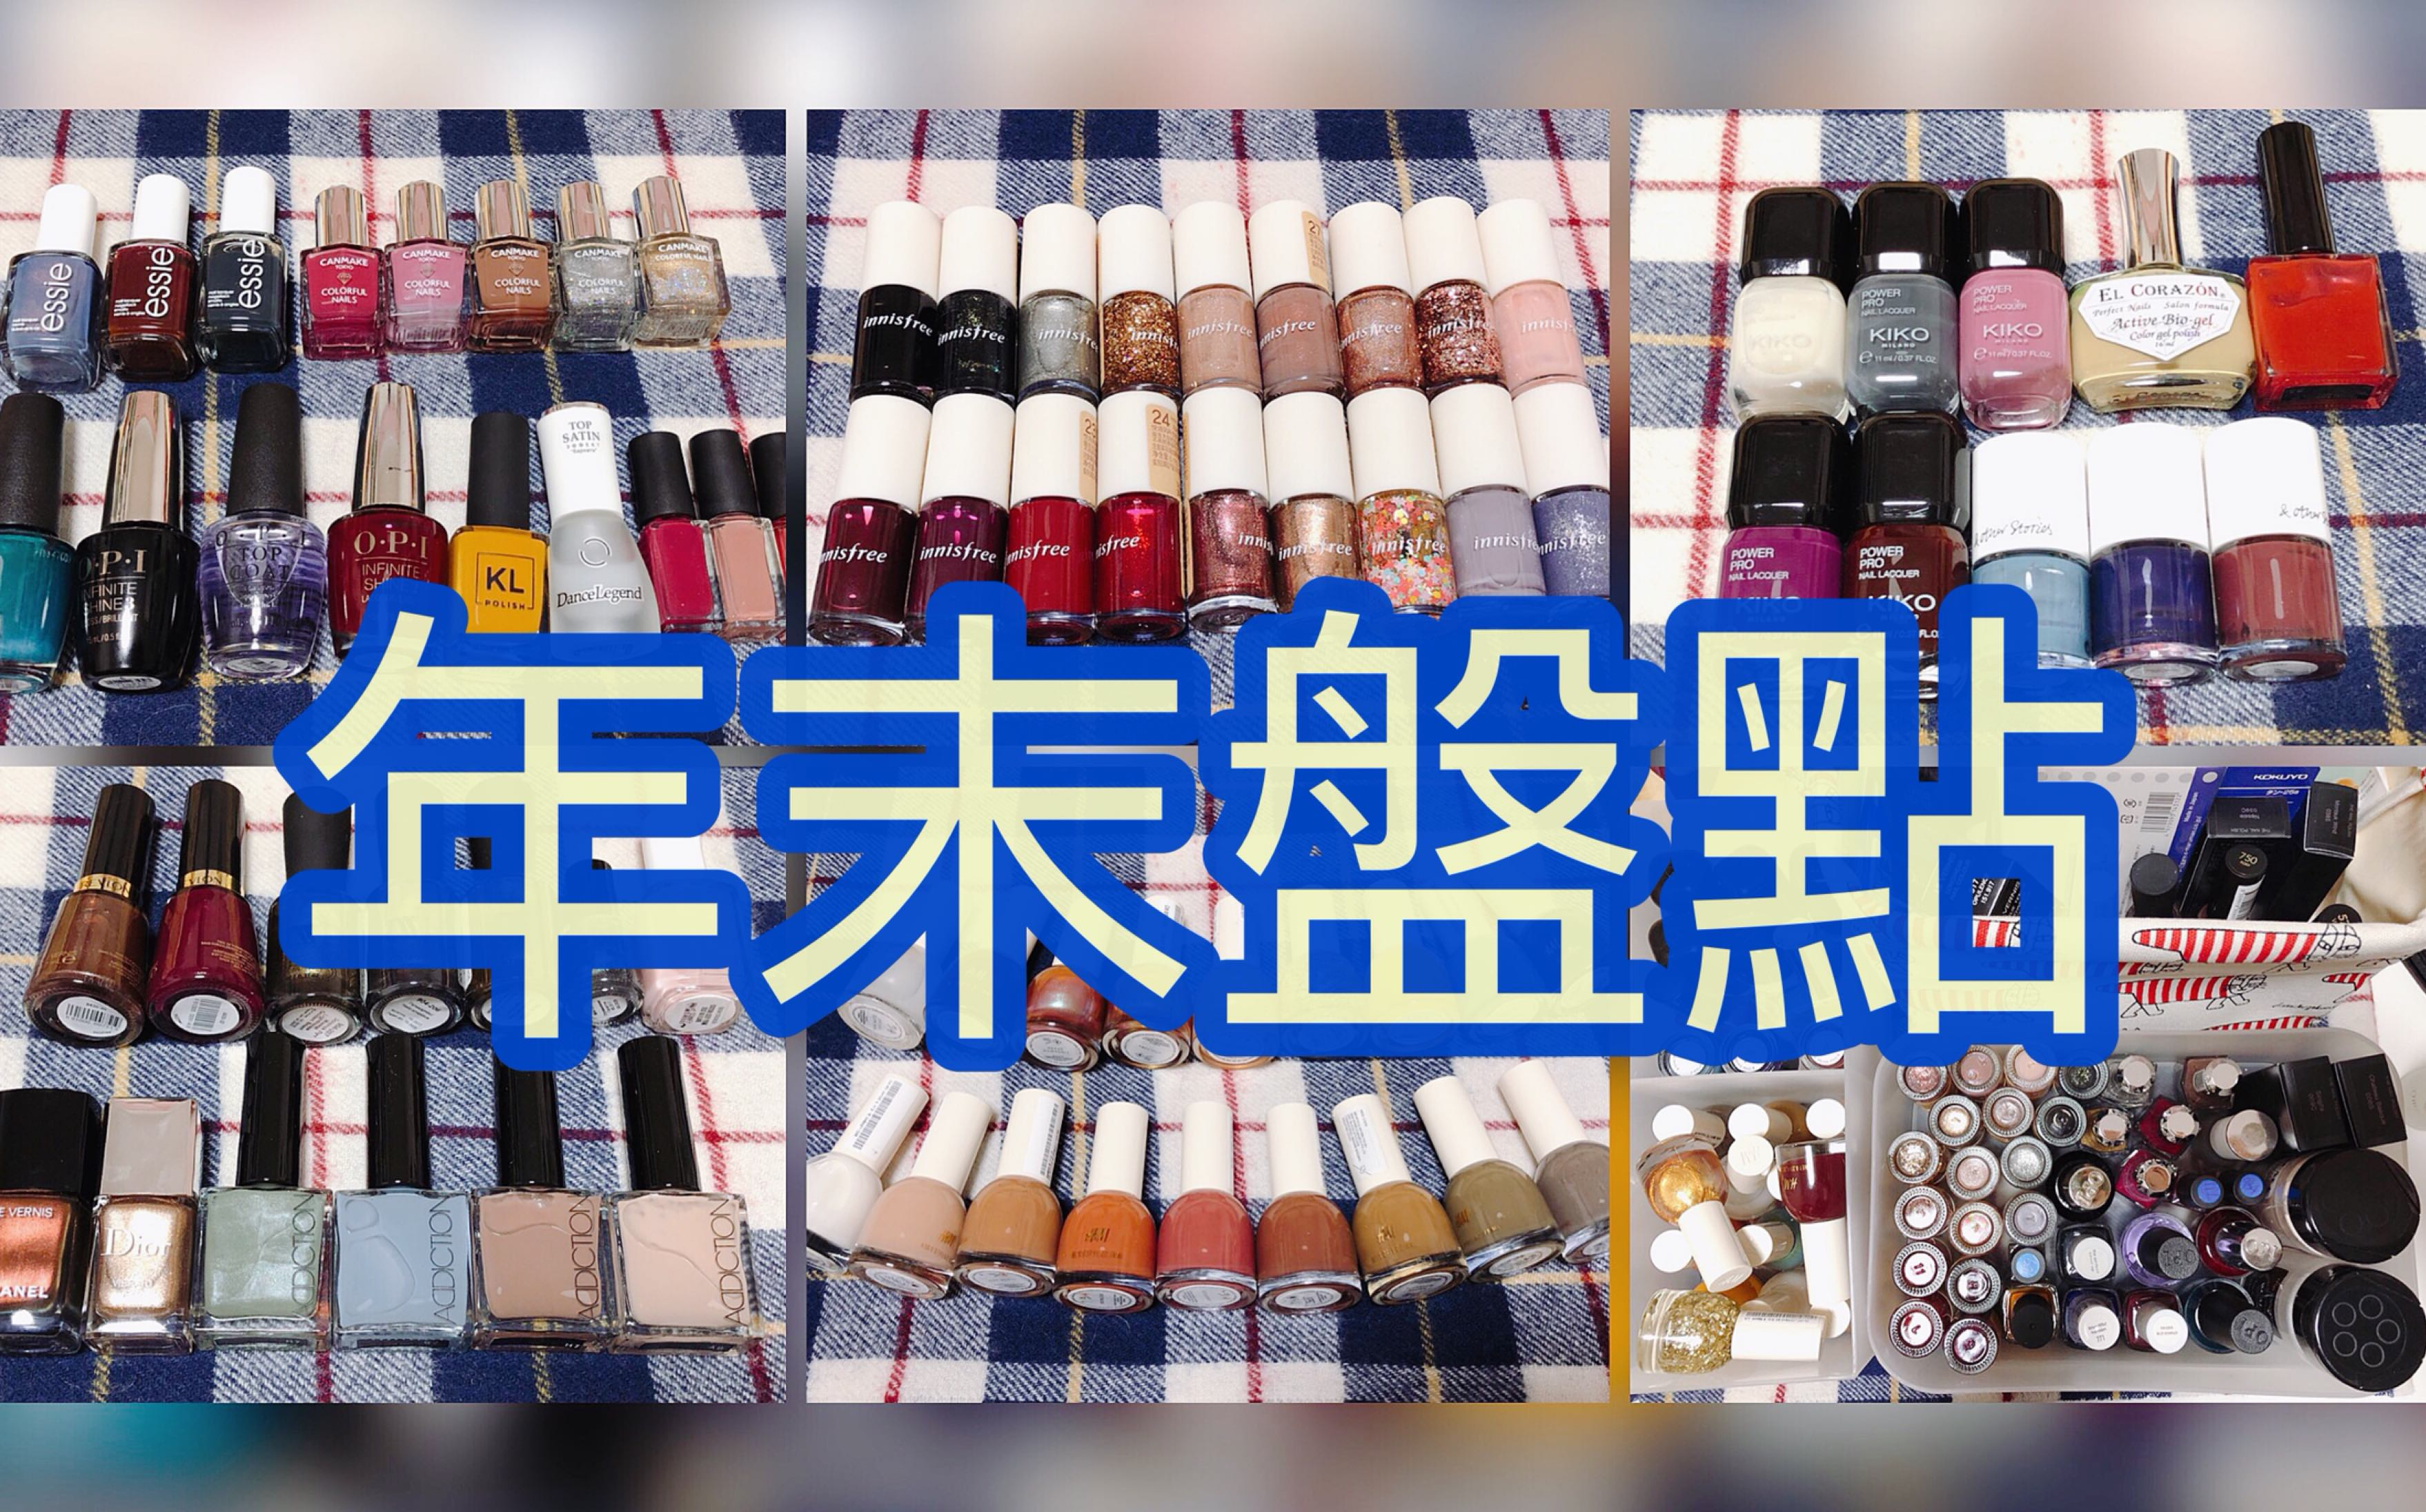 【111】指甲油年末盘点 hm/innisfree/addiction/opi/essie/chanel/dior/canmake etc